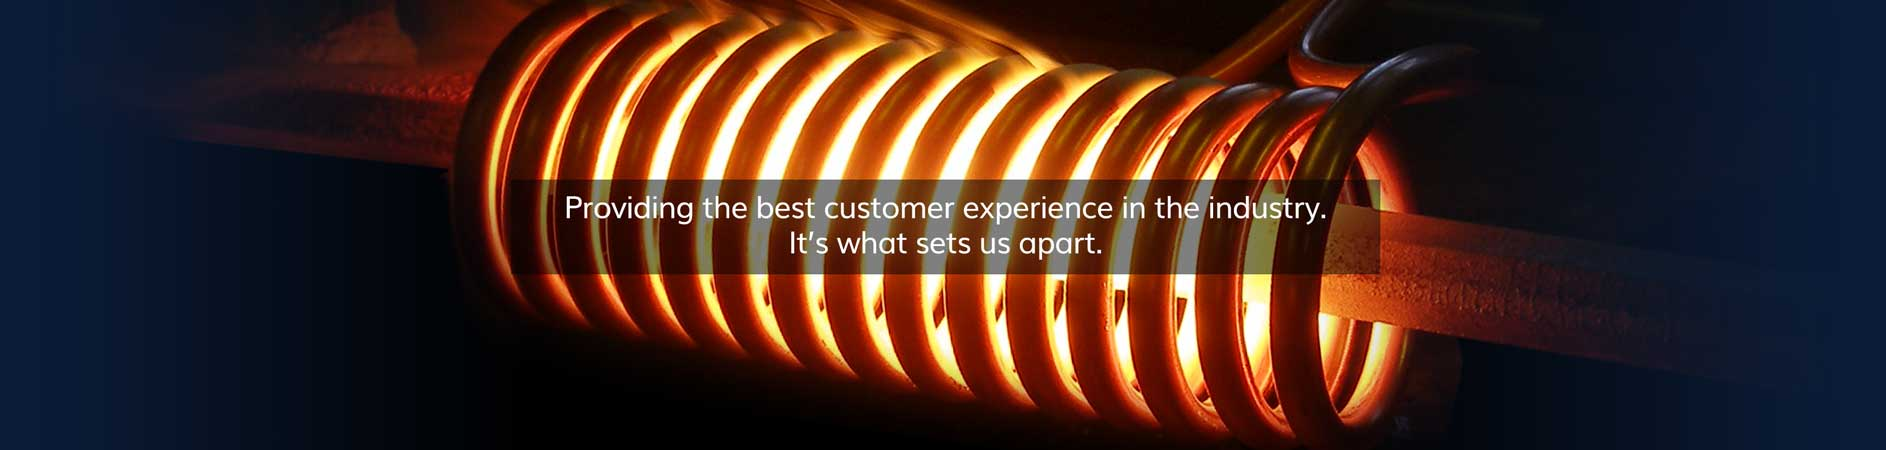 Providing the best customer experience in the industry. That's what sets us apart.